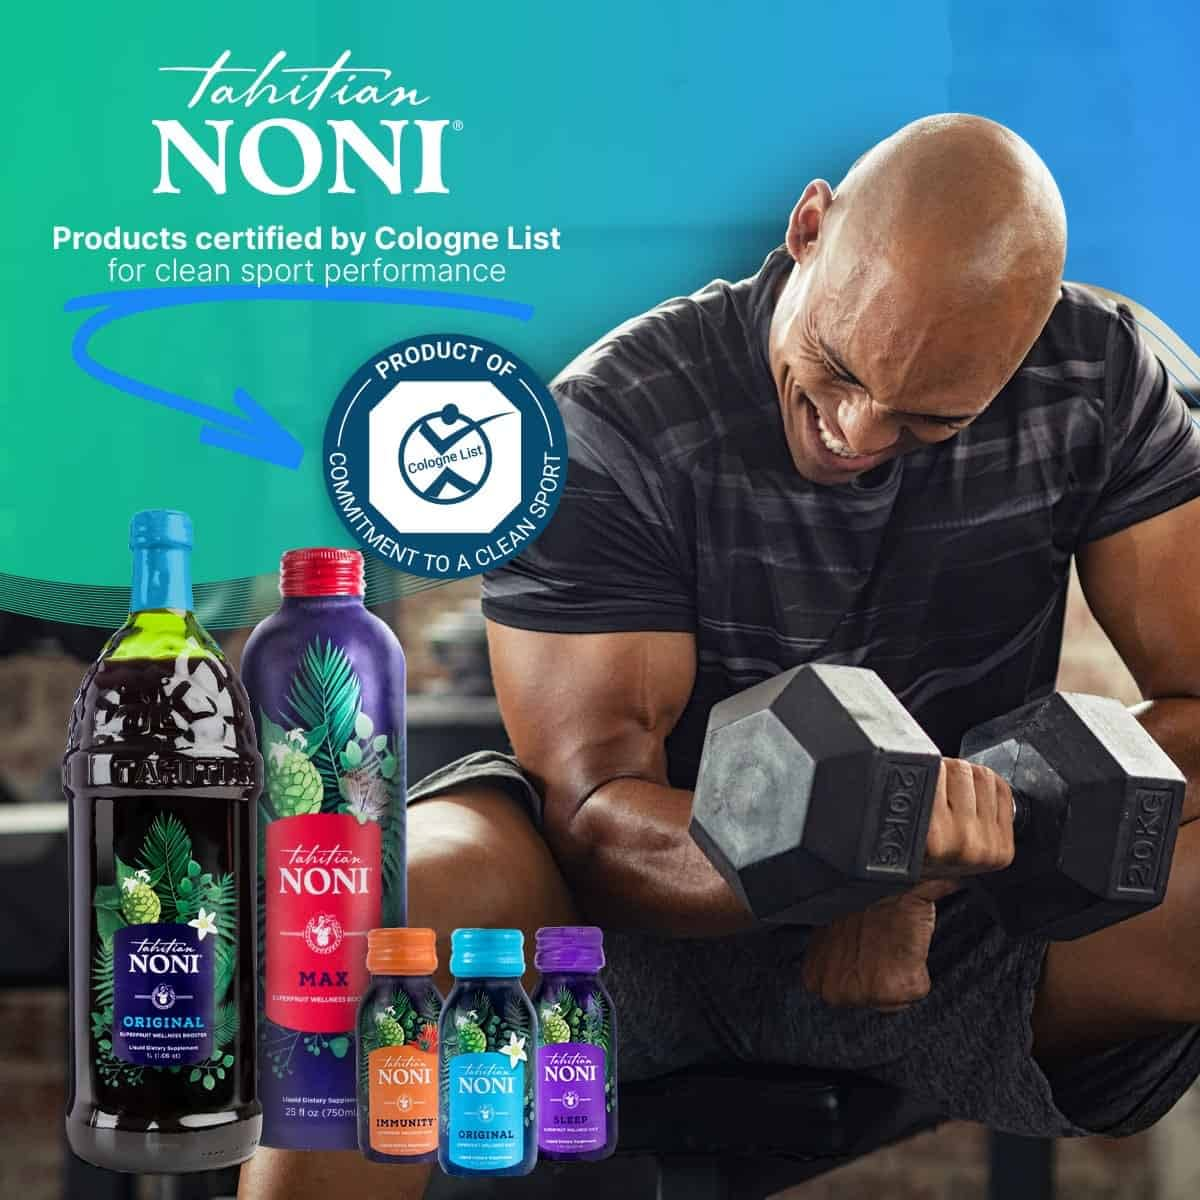 NONI Products Certified by Cologne List